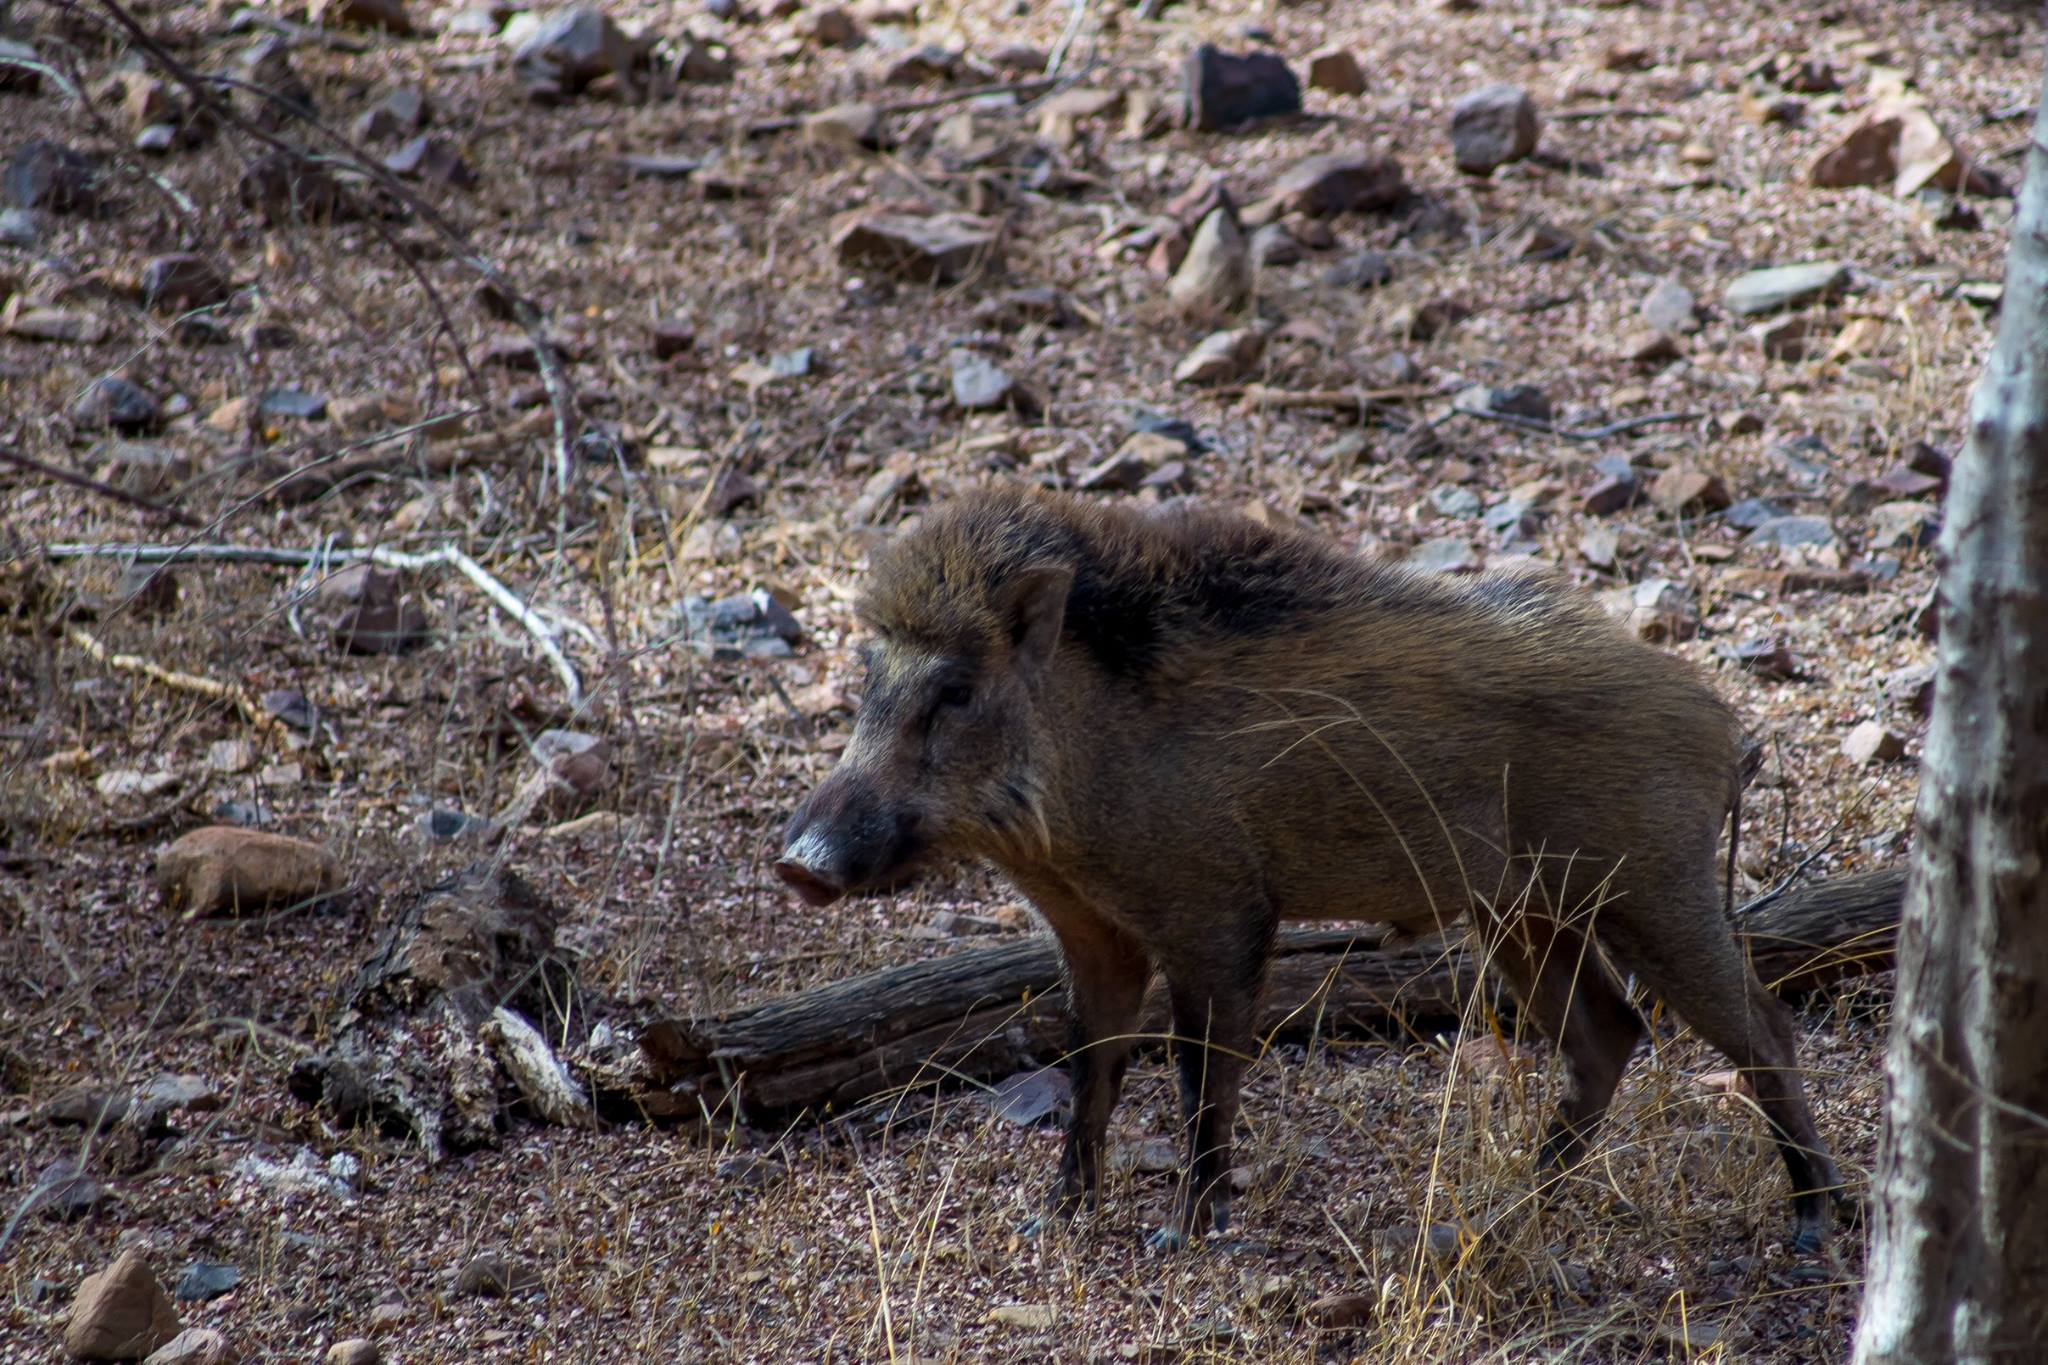 Wild boar at Ranthambhore